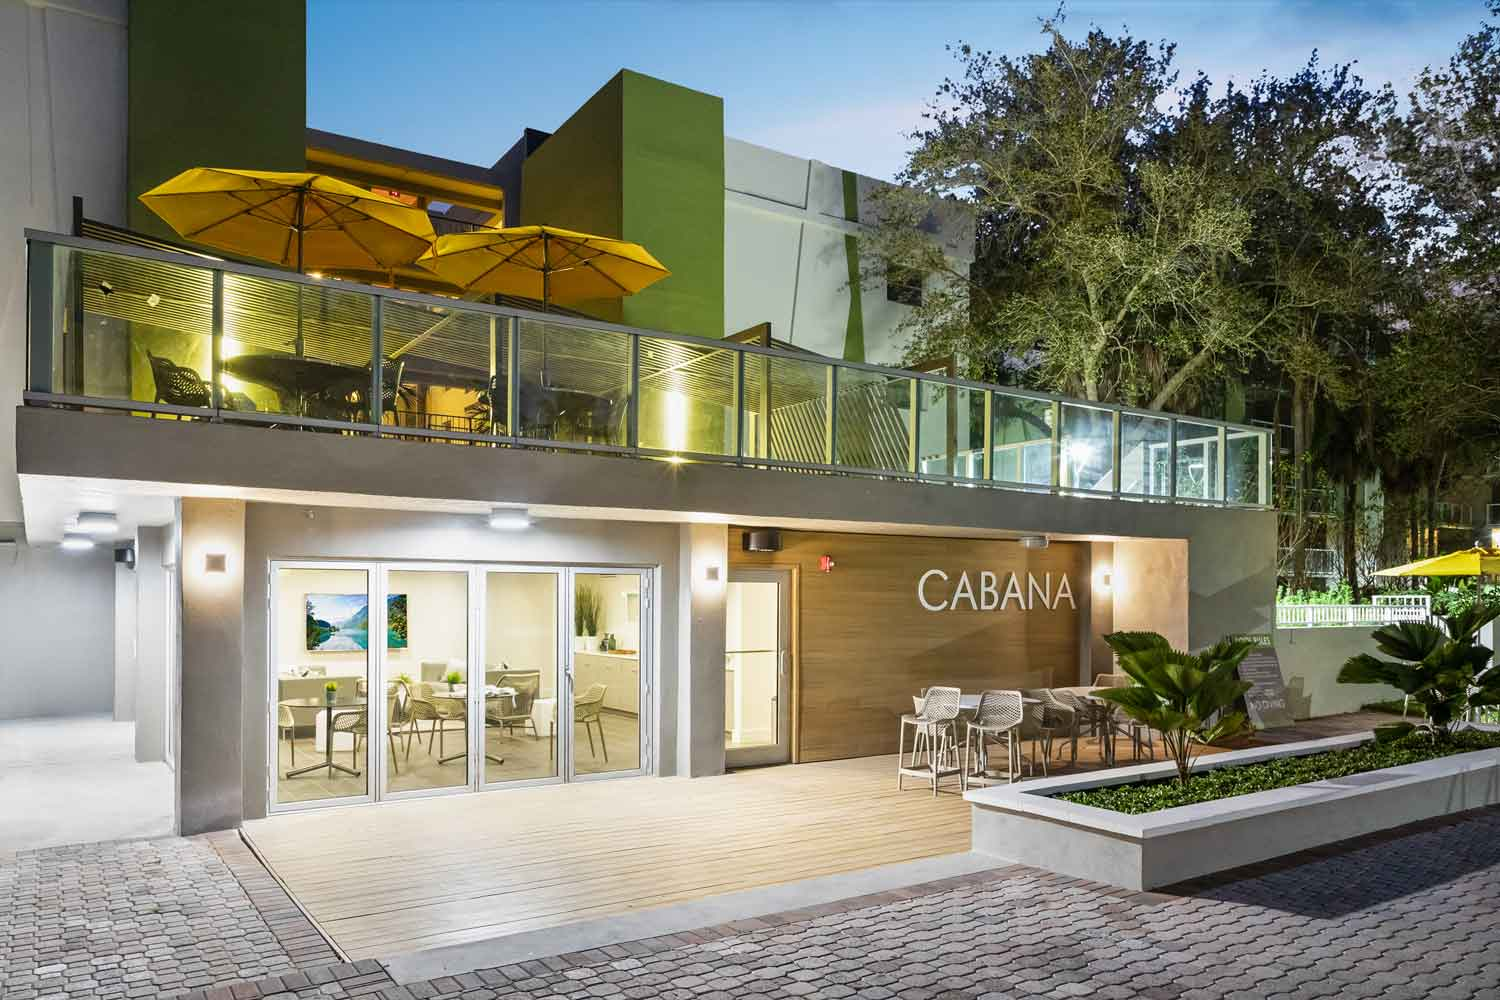 Community Clubhouse with Deck for Socializing at Nottingham Pine Apartments in Plantation, FL